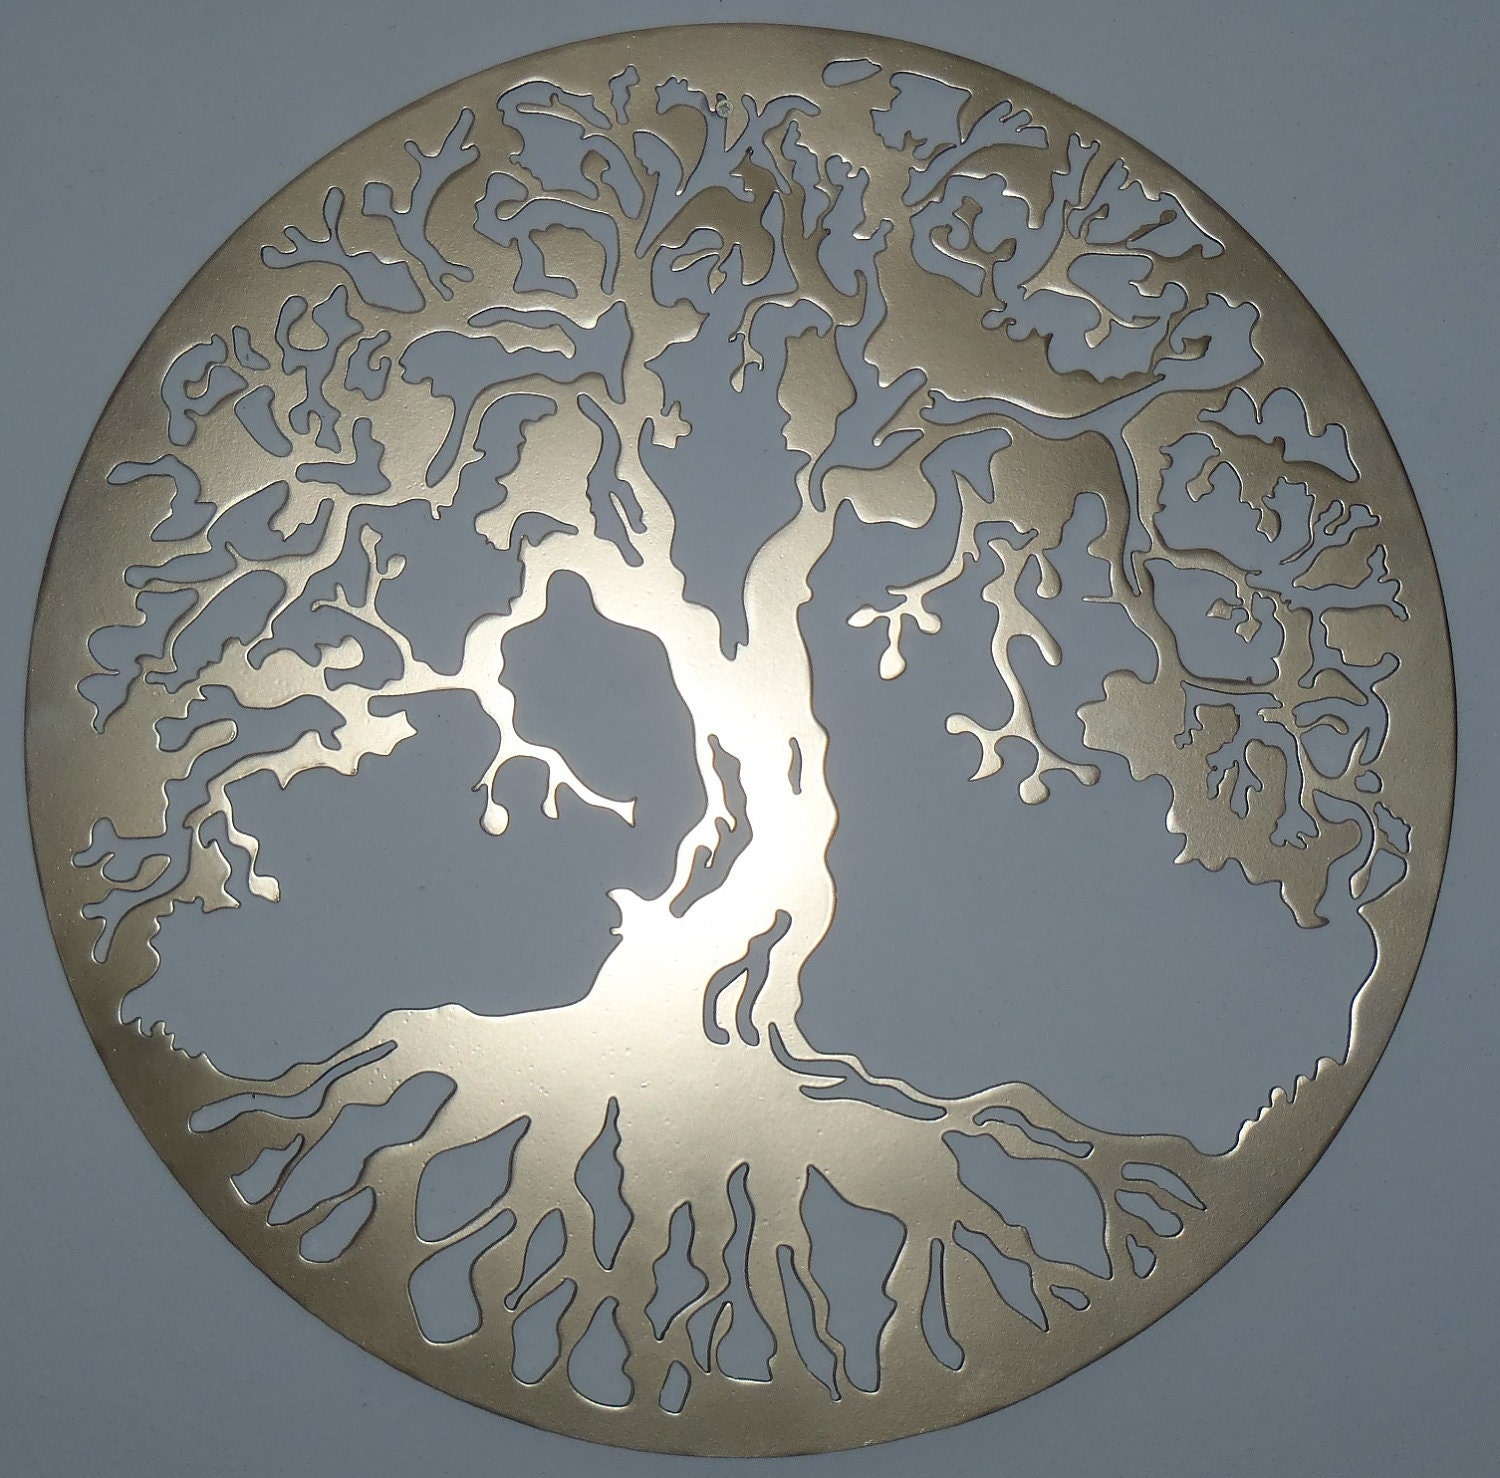 Tree of life large wall decor metal art golden look by tibi291 for Decoration murale arbre de vie